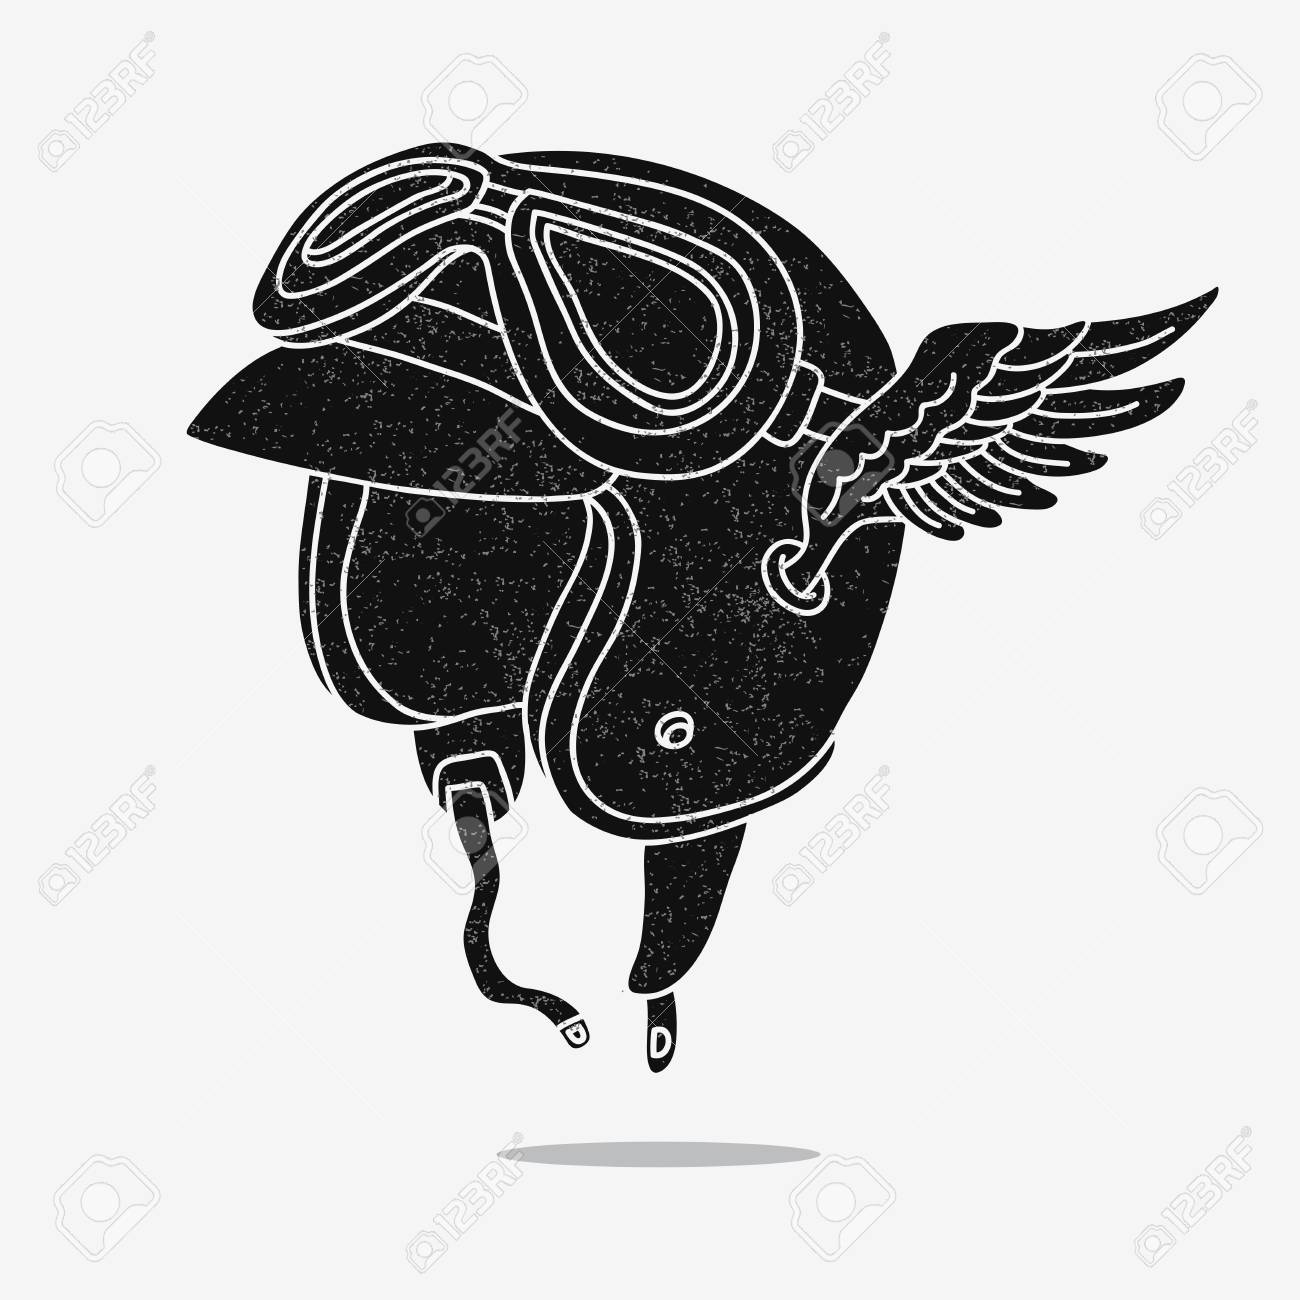 751d3a5131 Motorcycle helmet with goggles and wings. Vector illustration on a gray  background. Stock Vector